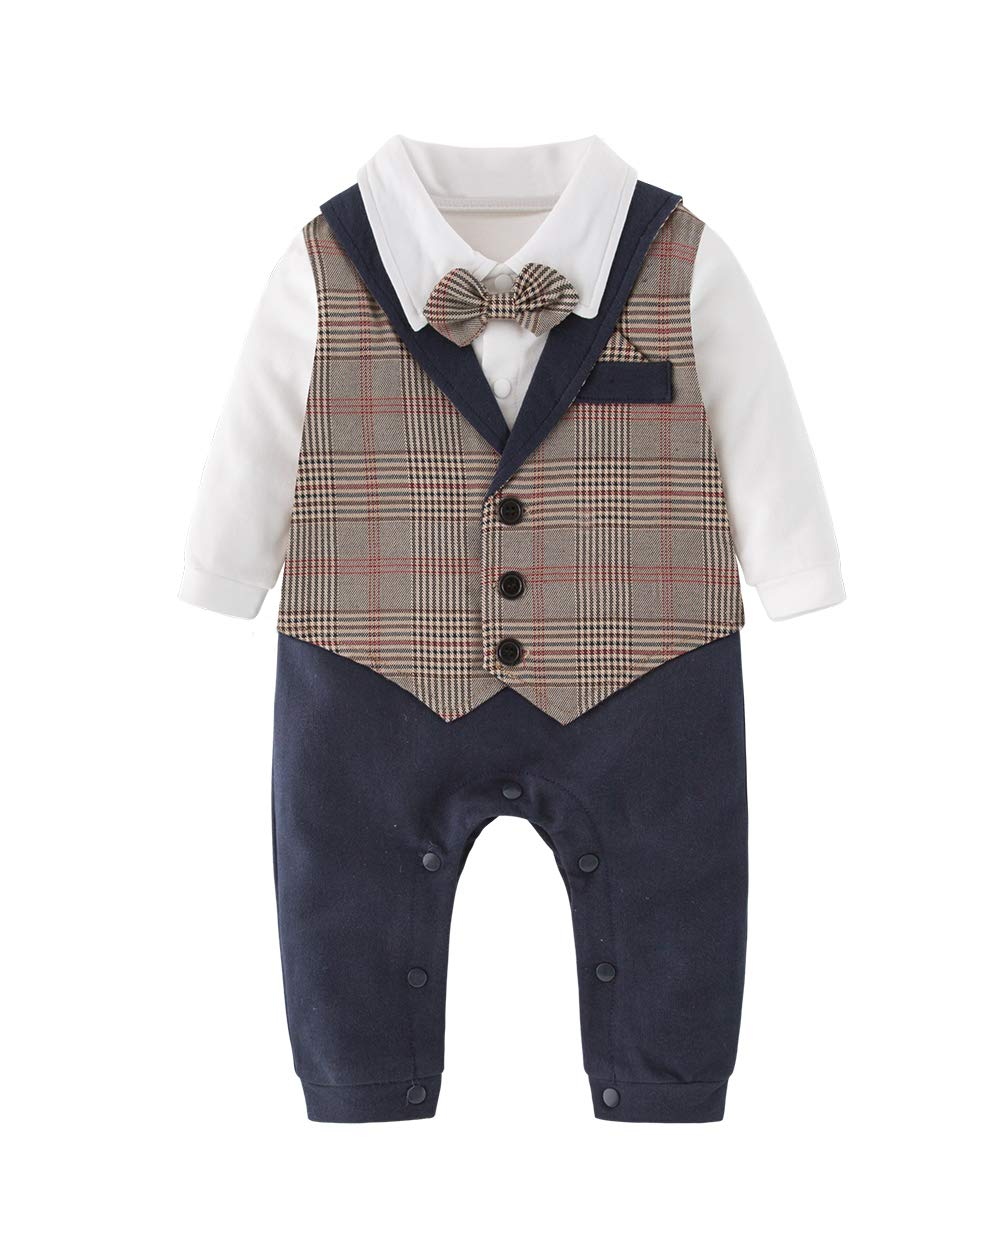 XM Nyan May's Baby Toddler Boys Gentleman Bowtie Faux Vest Romper Onesie